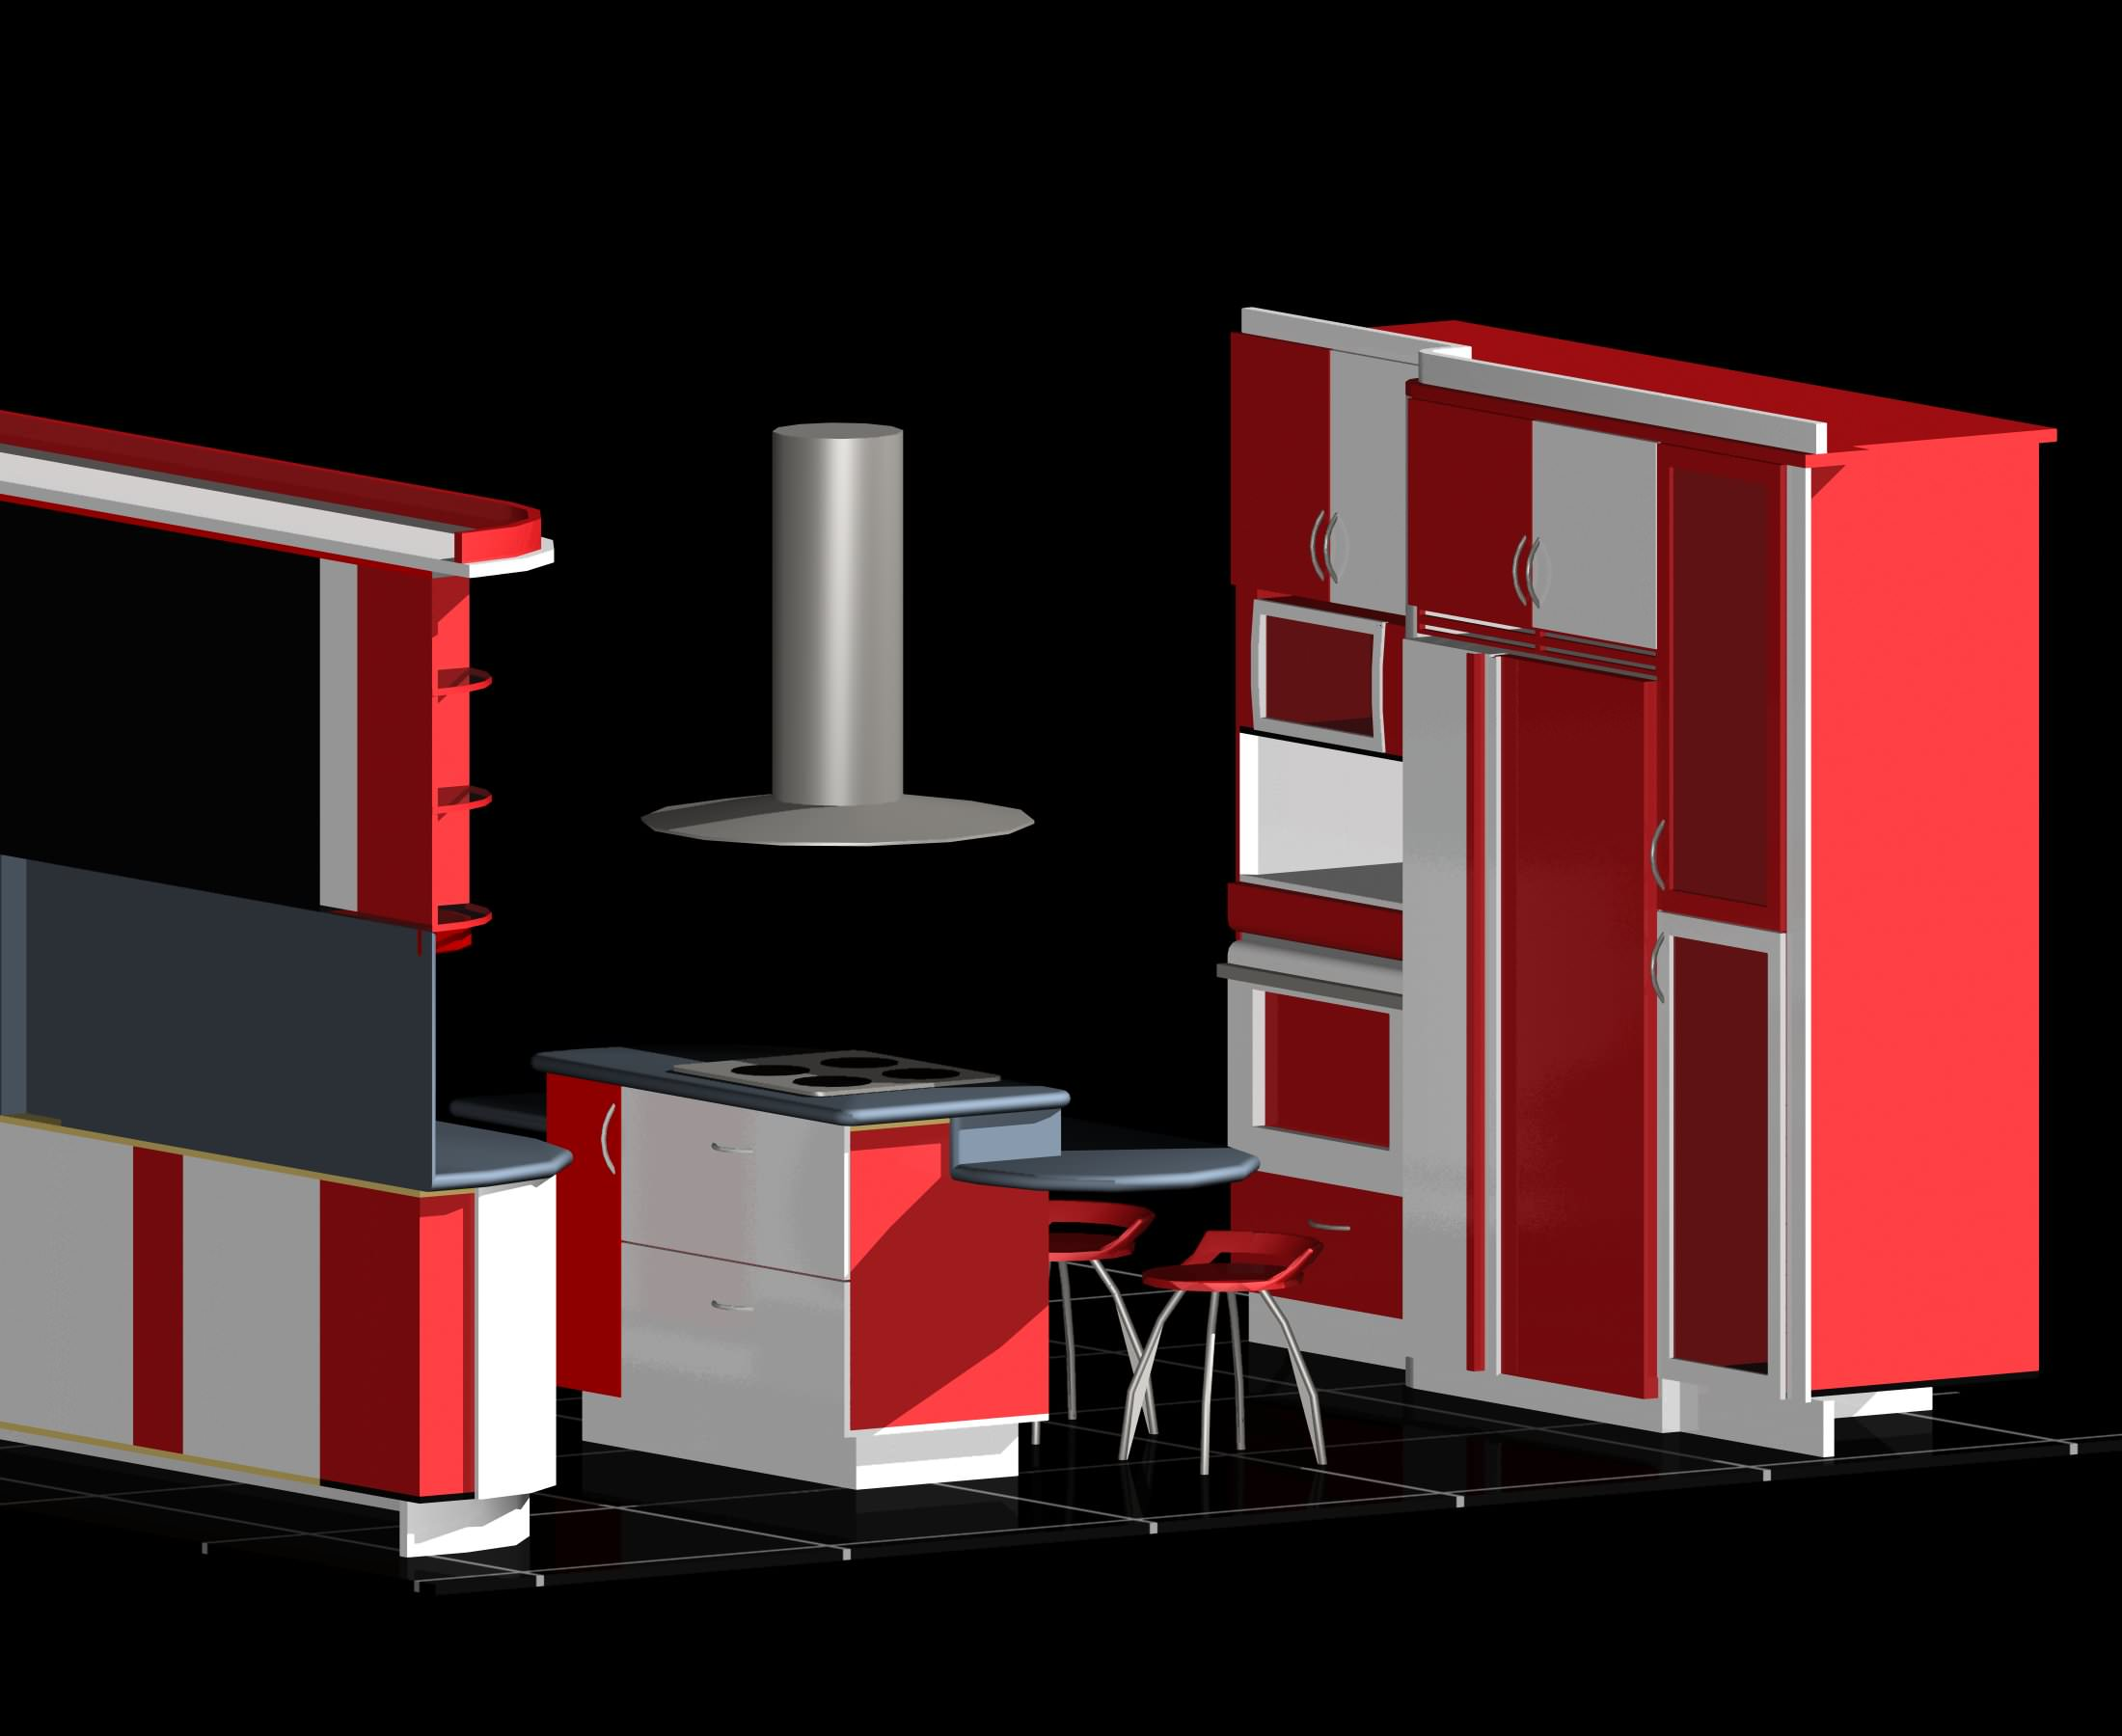 Modular kitchen auto cad 3d free 3d model dwg for Interior design cad free